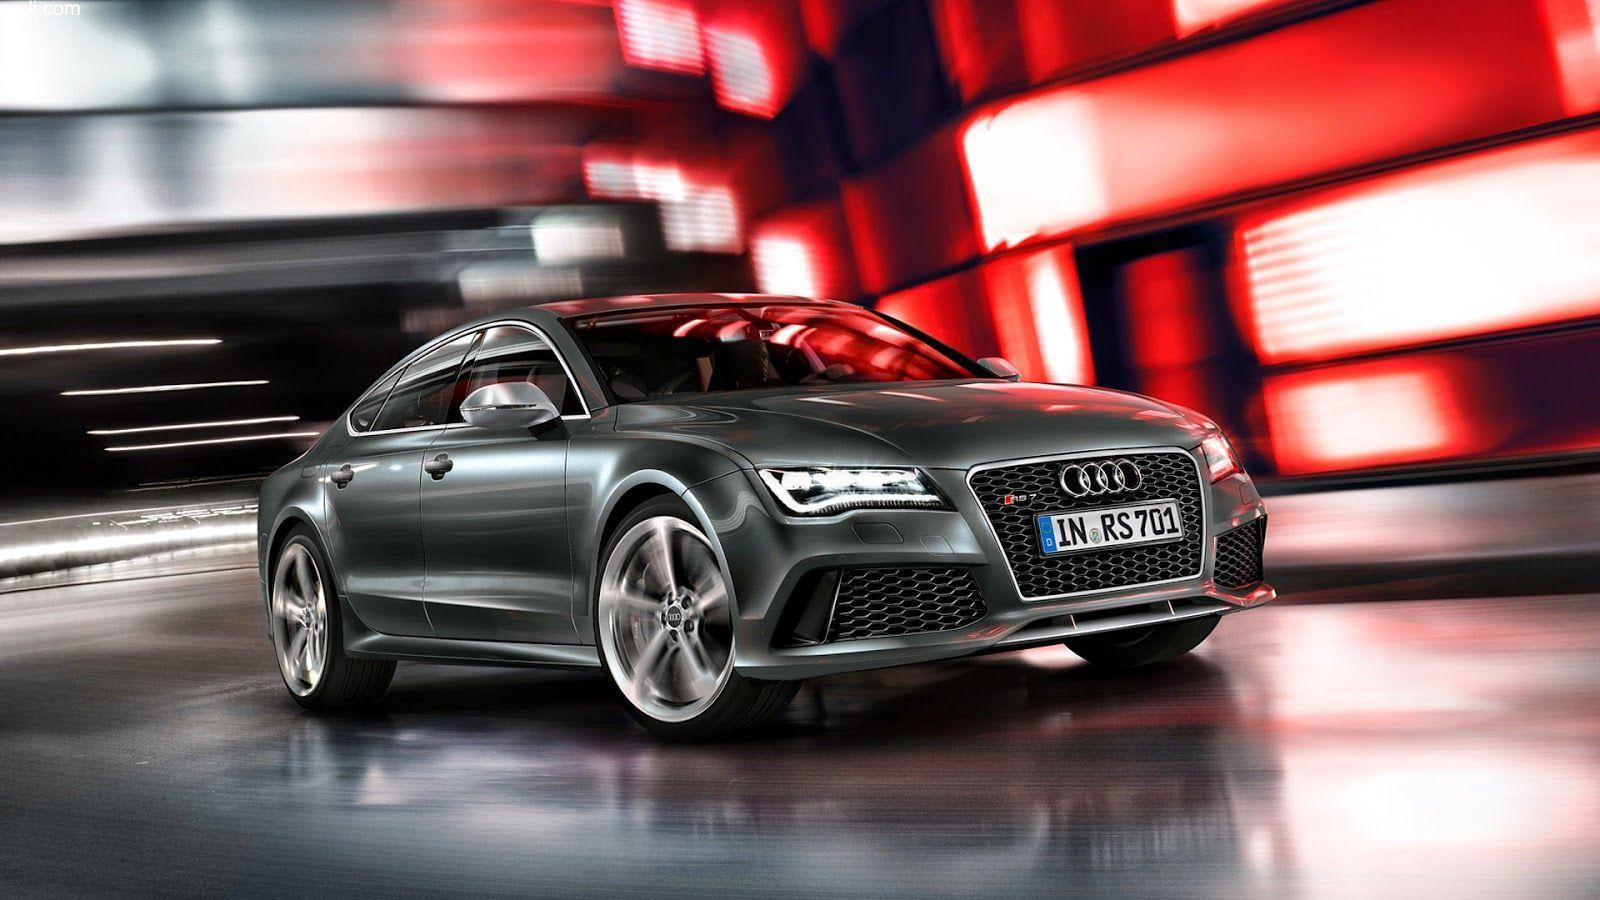 Audi Rs7 Red Wallpapers Audi Rs7 Sportback Hd Image Hd Wallpapers